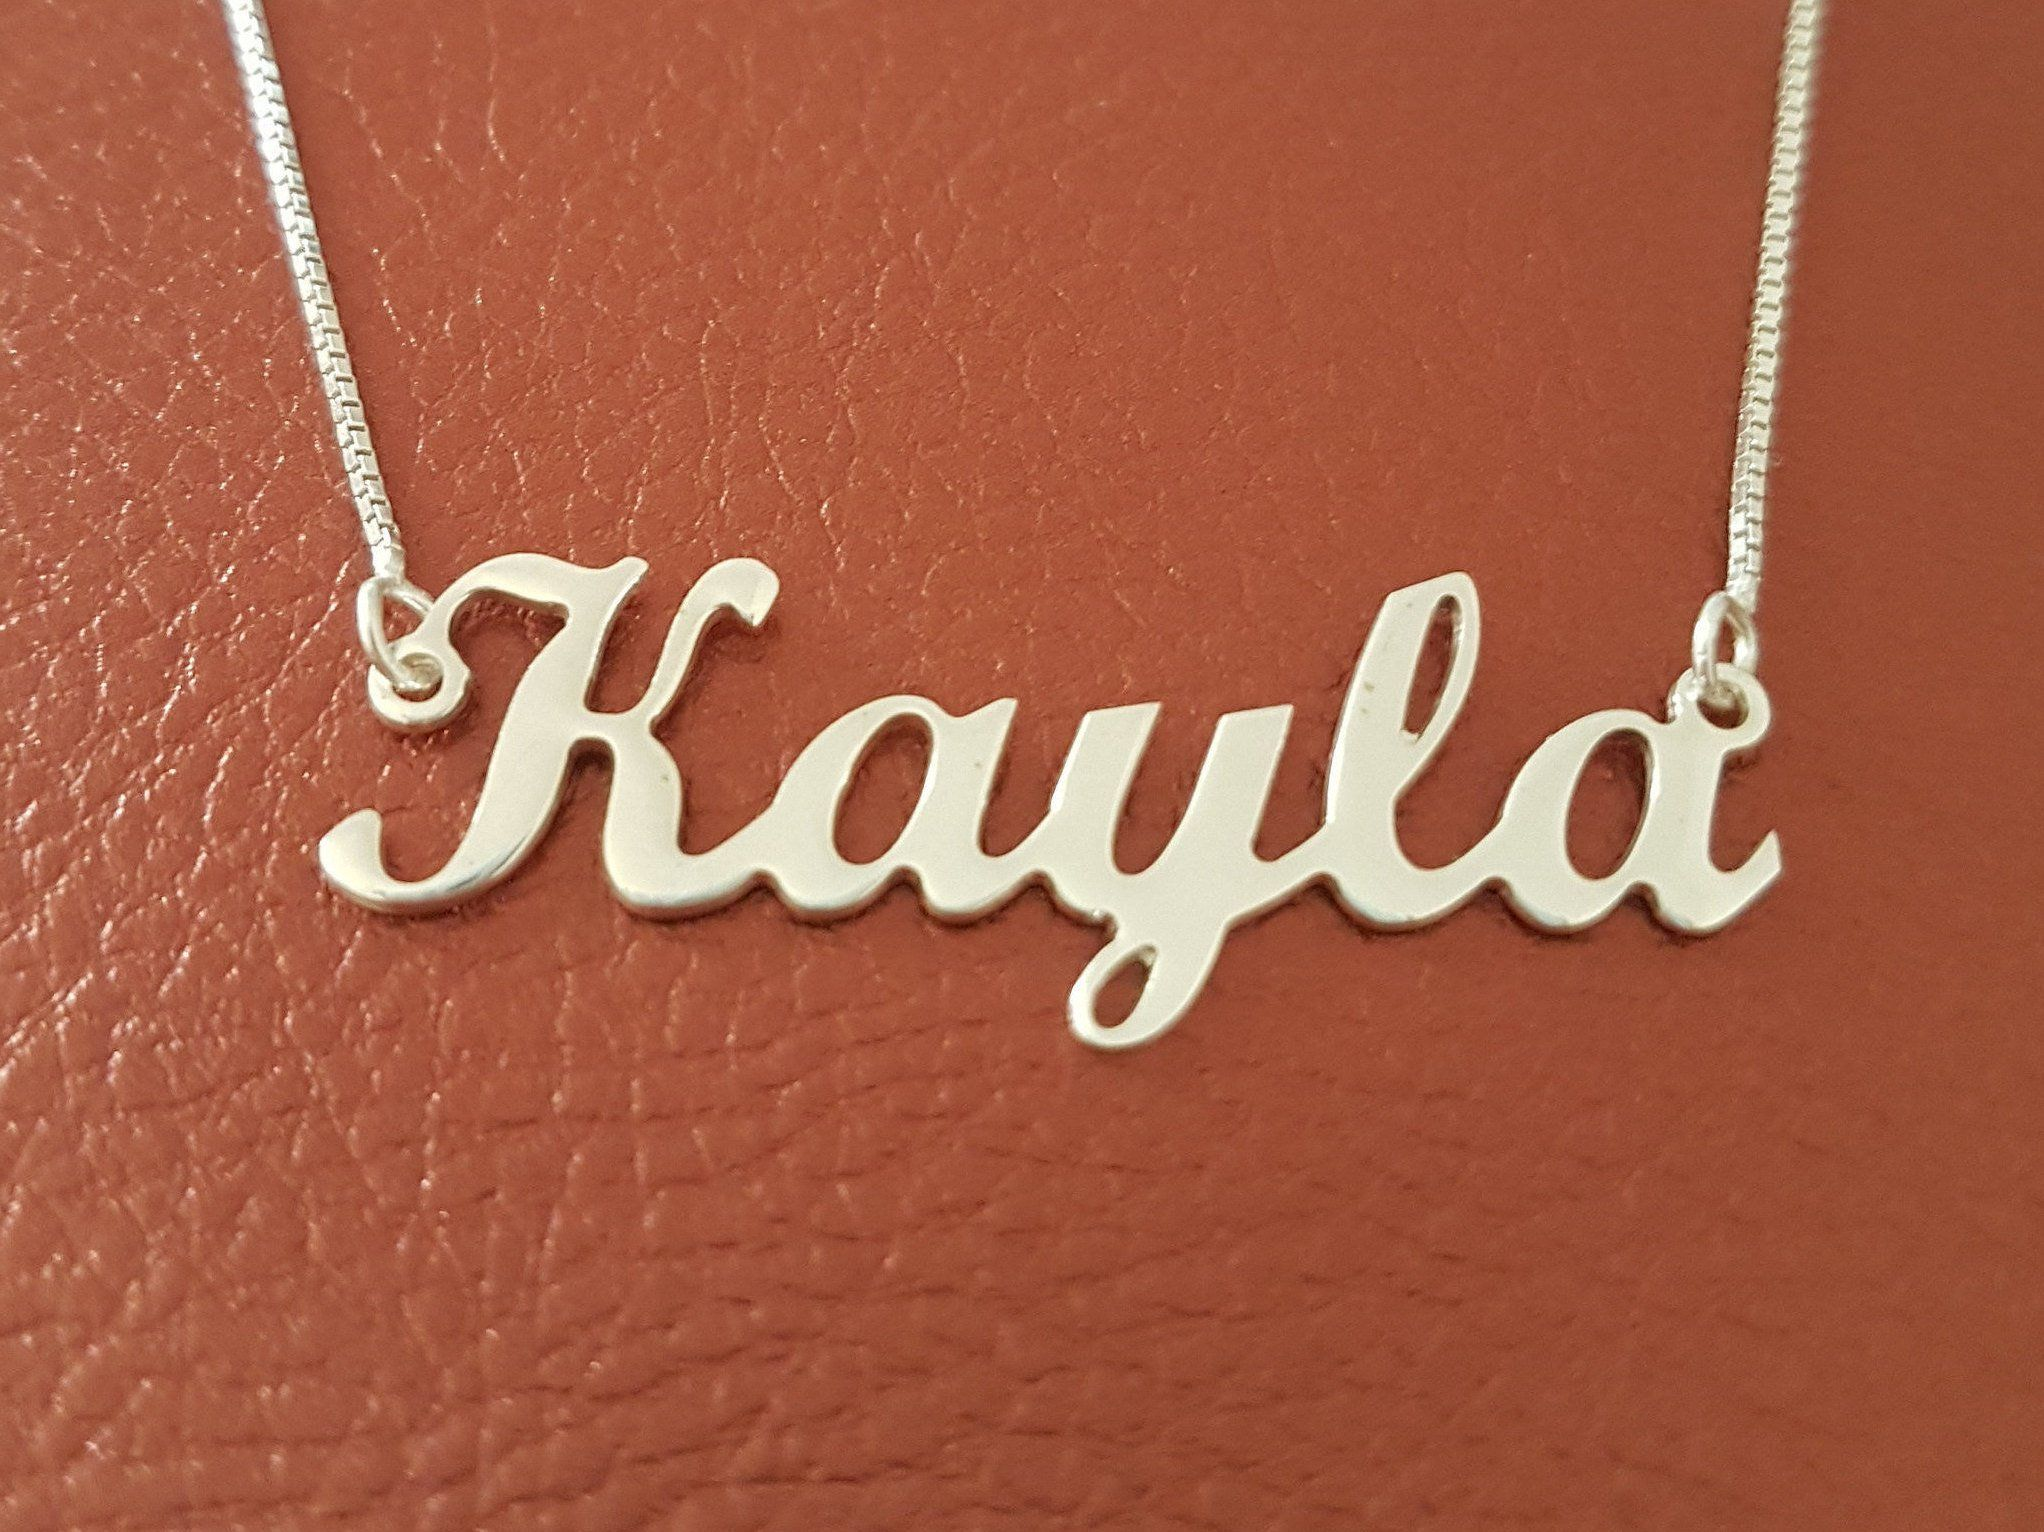 Personalized name necklace sterling silver name charm kayla name